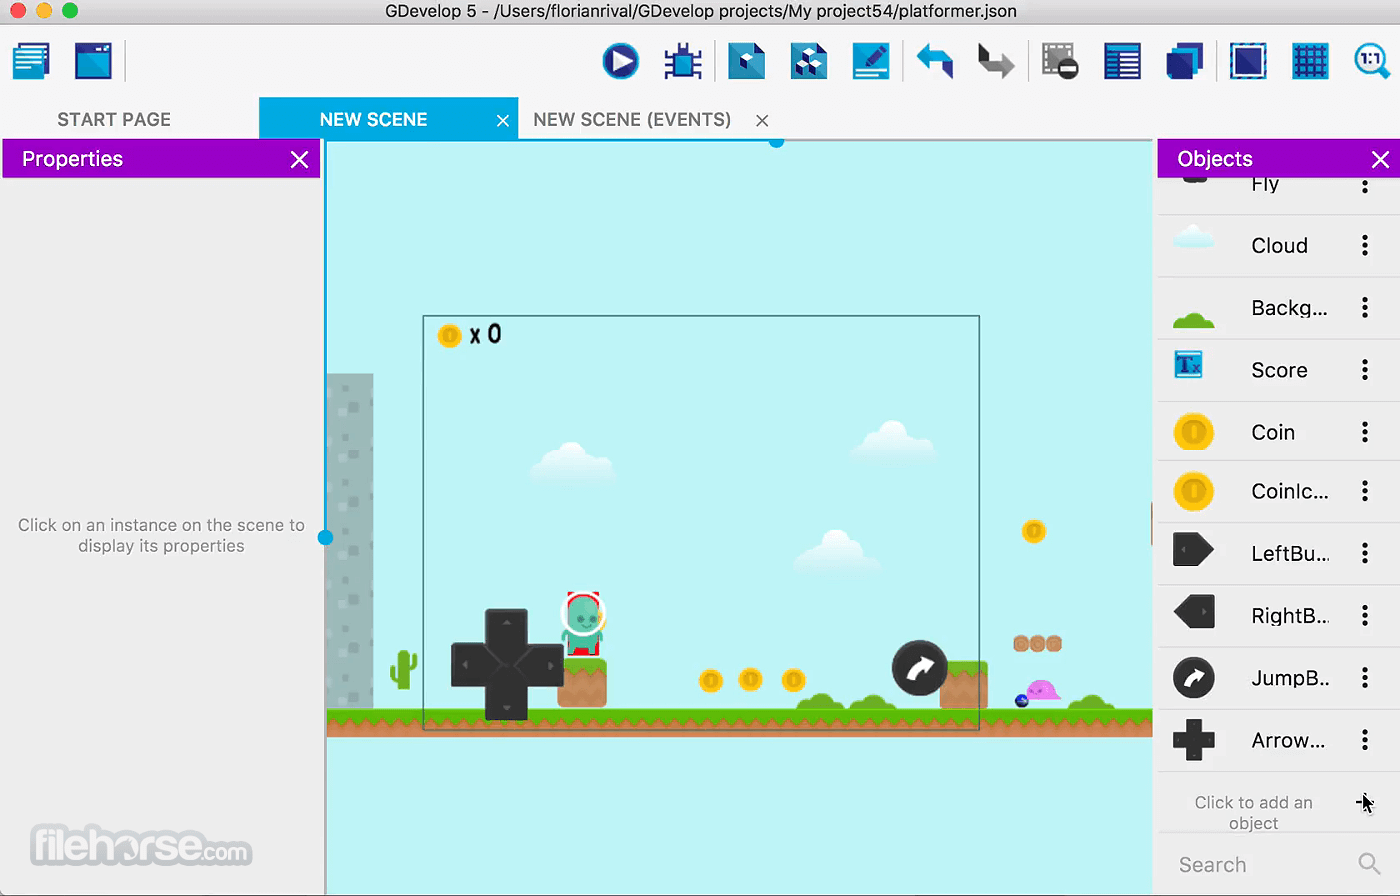 GDevelop 5.0.0 Beta 105 Screenshot 1